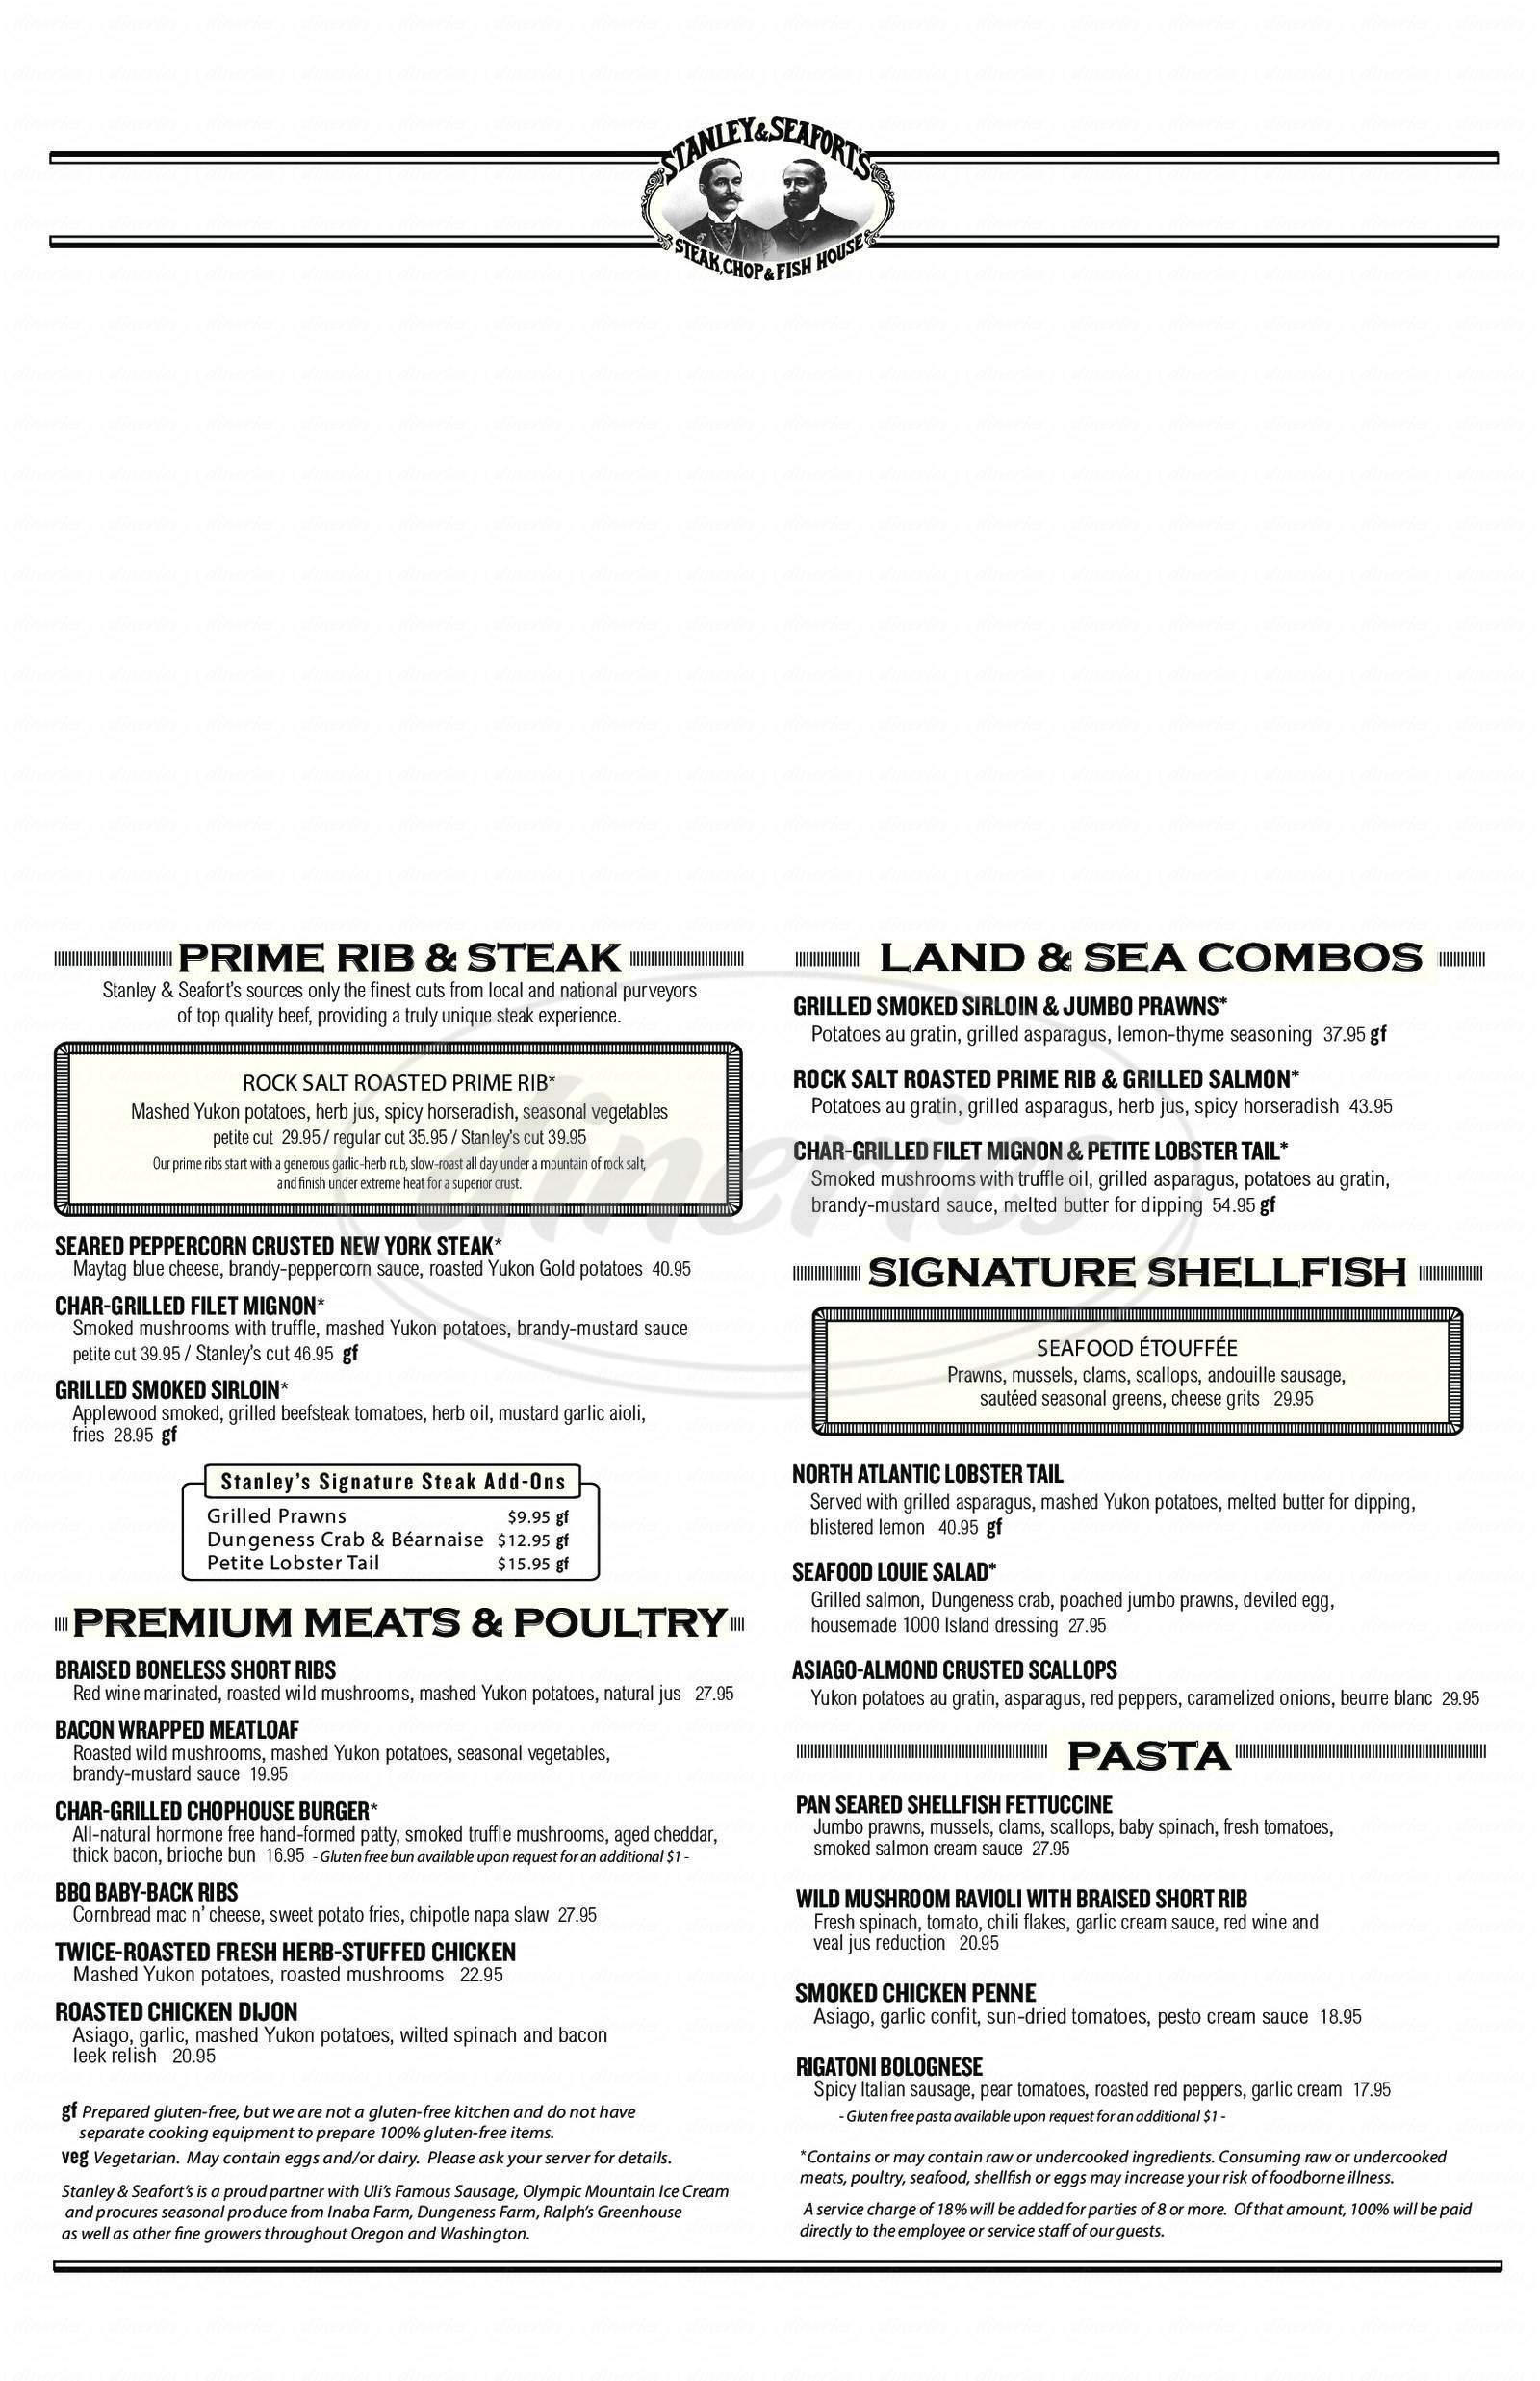 menu for Stanley & Seafort's Steak Chop & Fish House